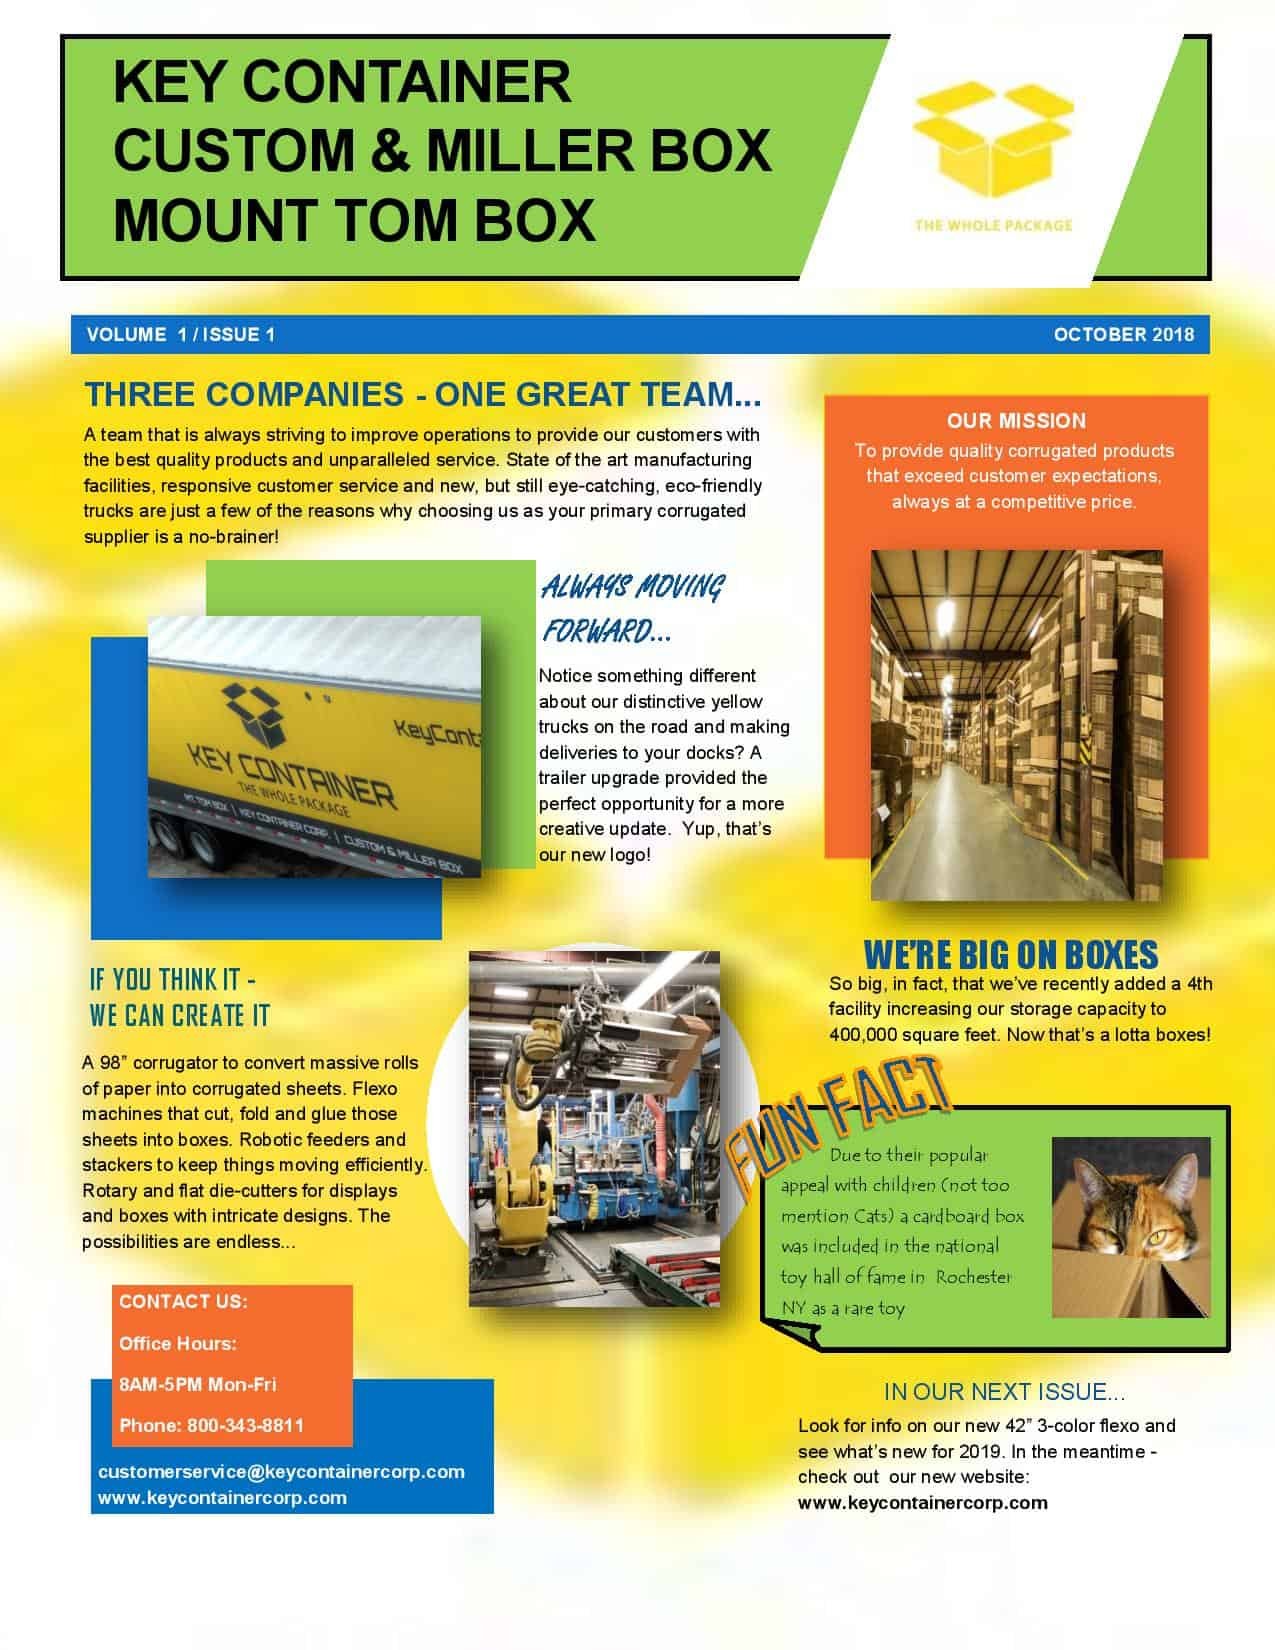 Key Container Newsletter Vol 1